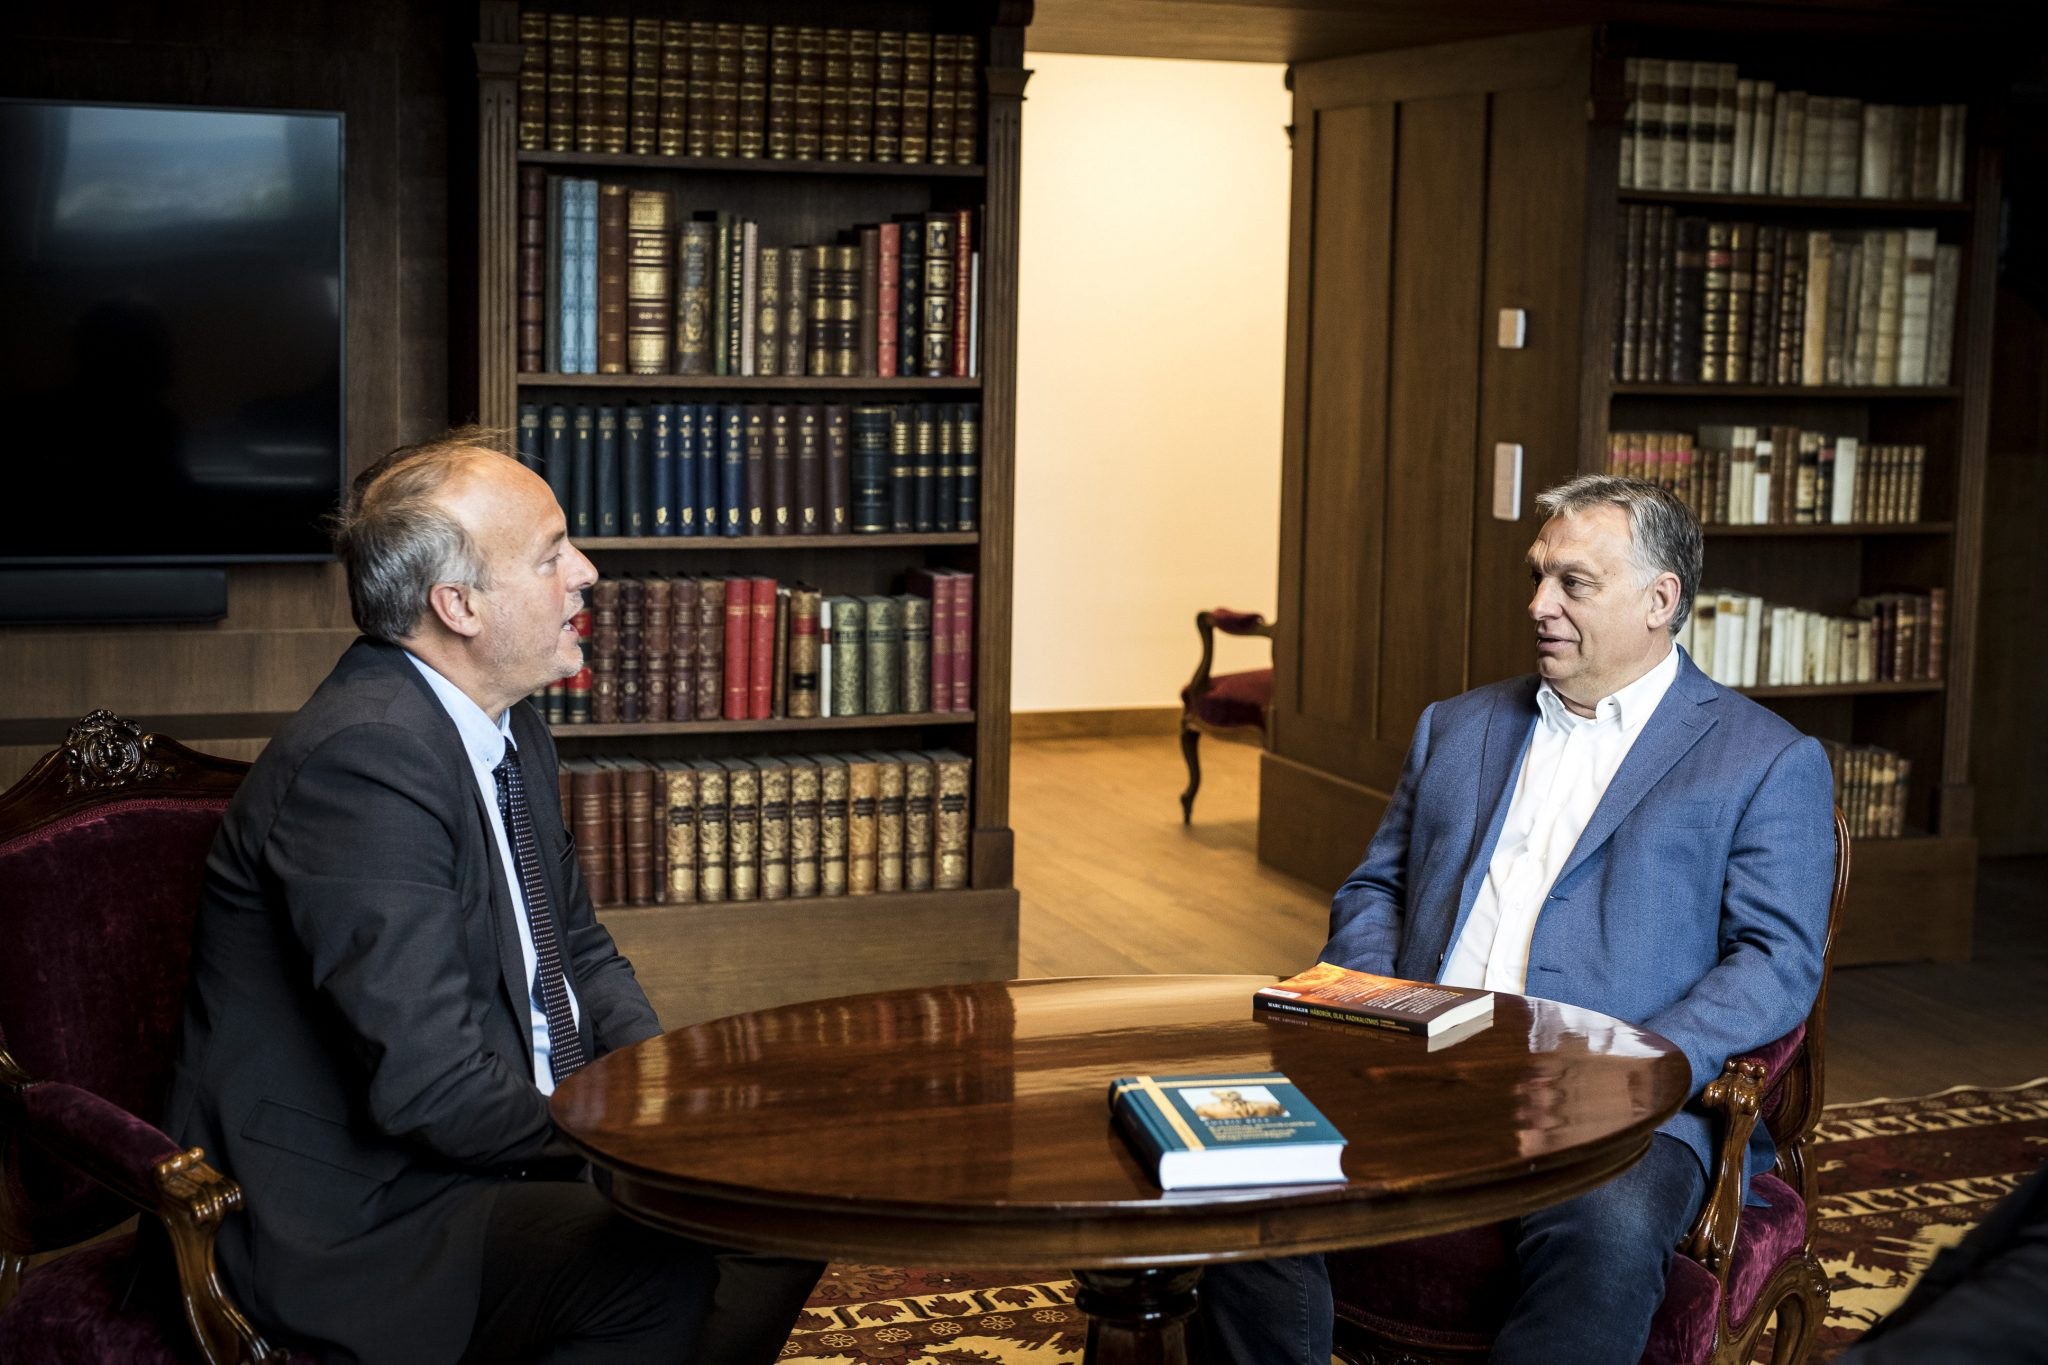 Orbán Discusses Persecuted Christians, Protection for Traditional Values with Christian Charity Head post's picture